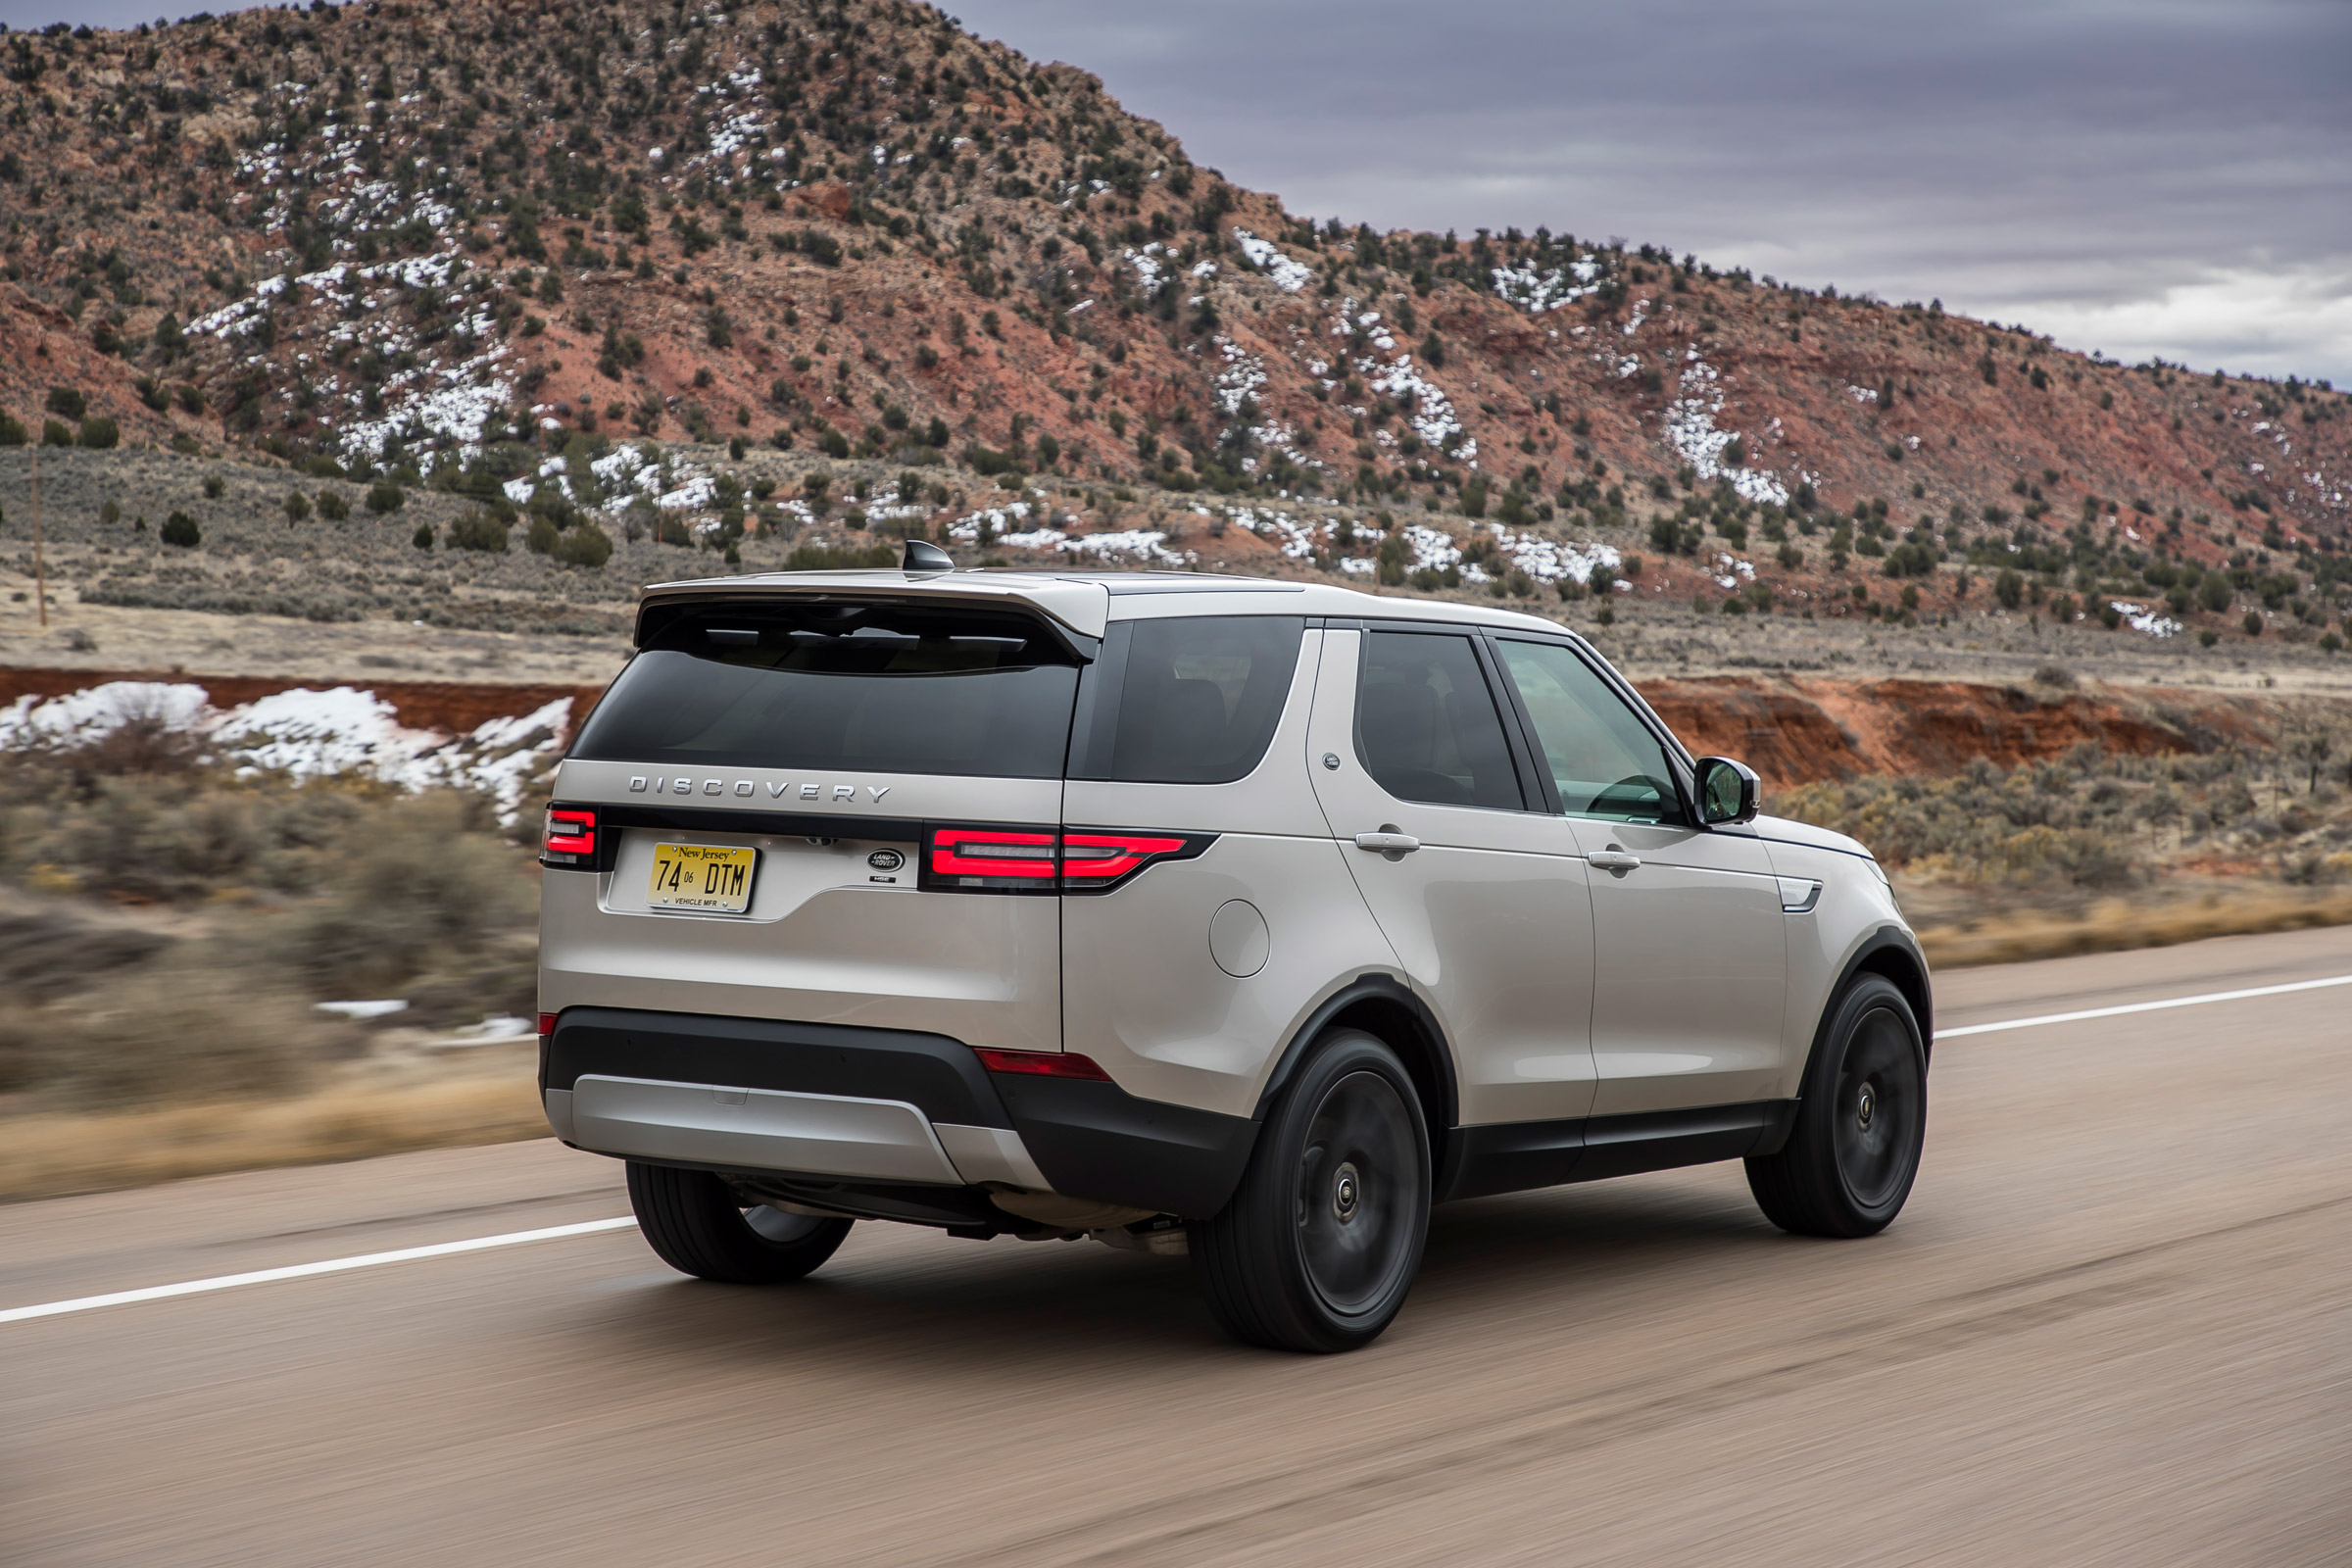 2017 Land Rover Discovery Test Drive Side And Rear View (Photo 15 of 17)